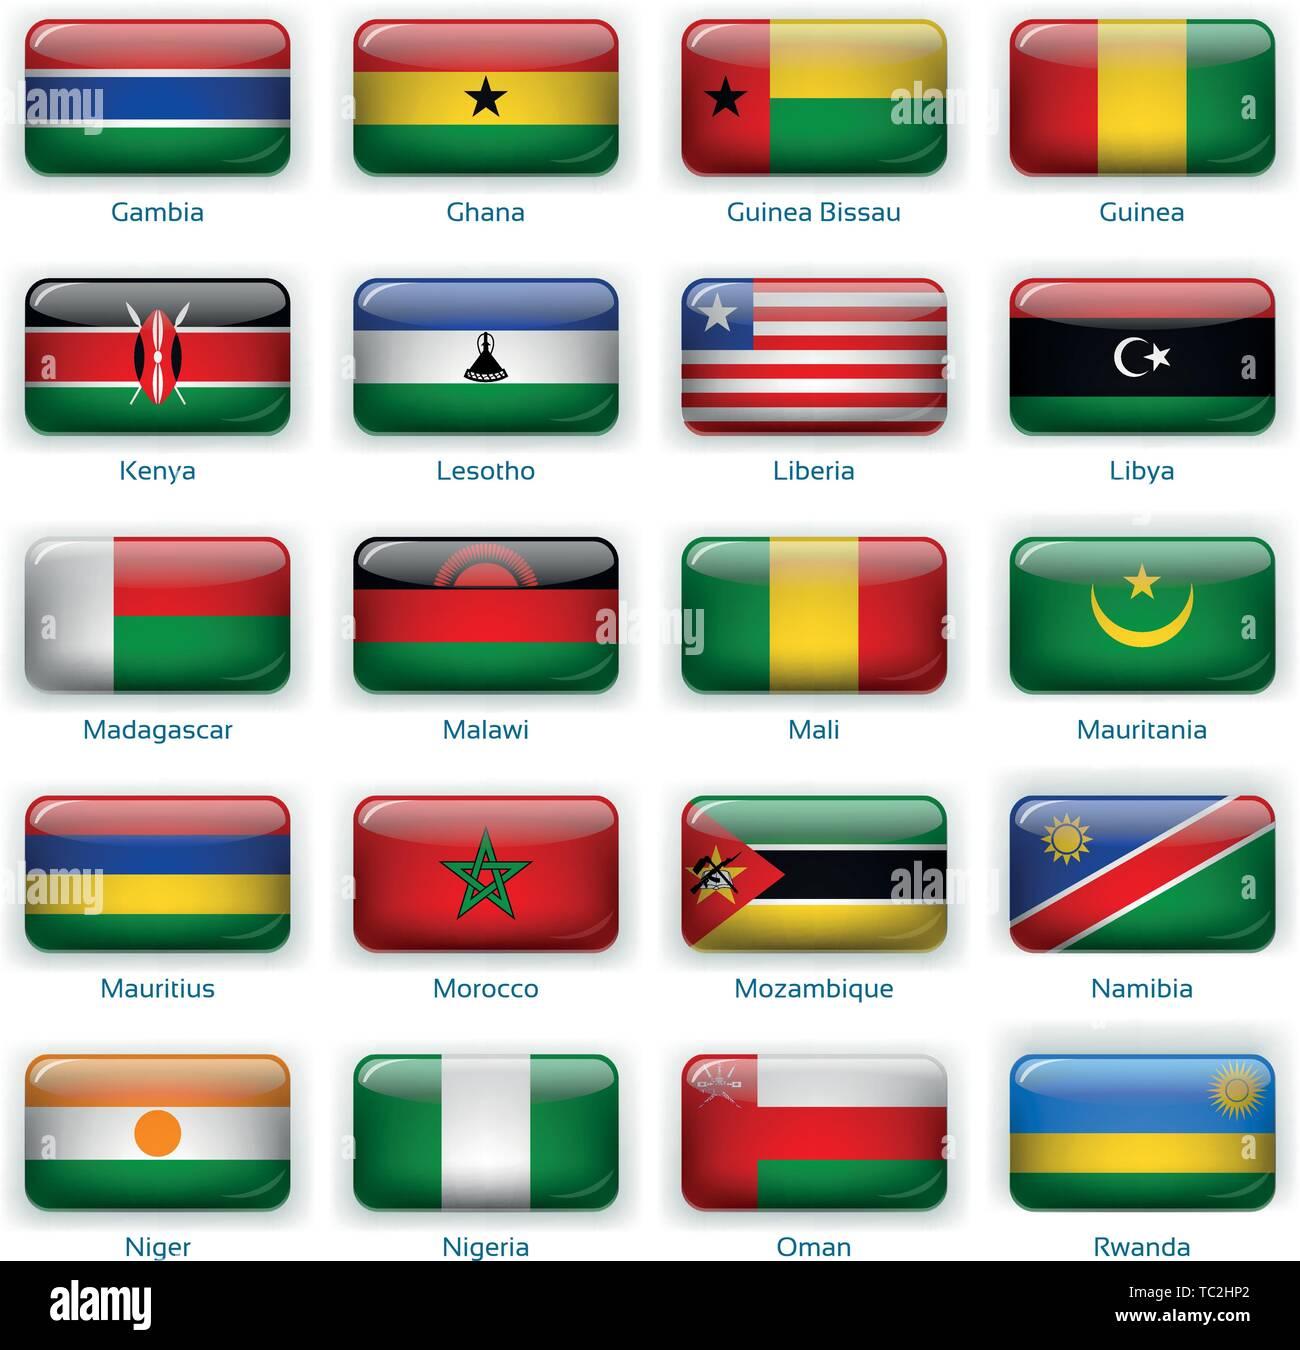 Button flags Africa two. Vector illustration. 3 layers. Shadows, flat flag you can use it separately, button. Collection of 220 world flags. Accurate colors. Easy changes. - Stock Vector